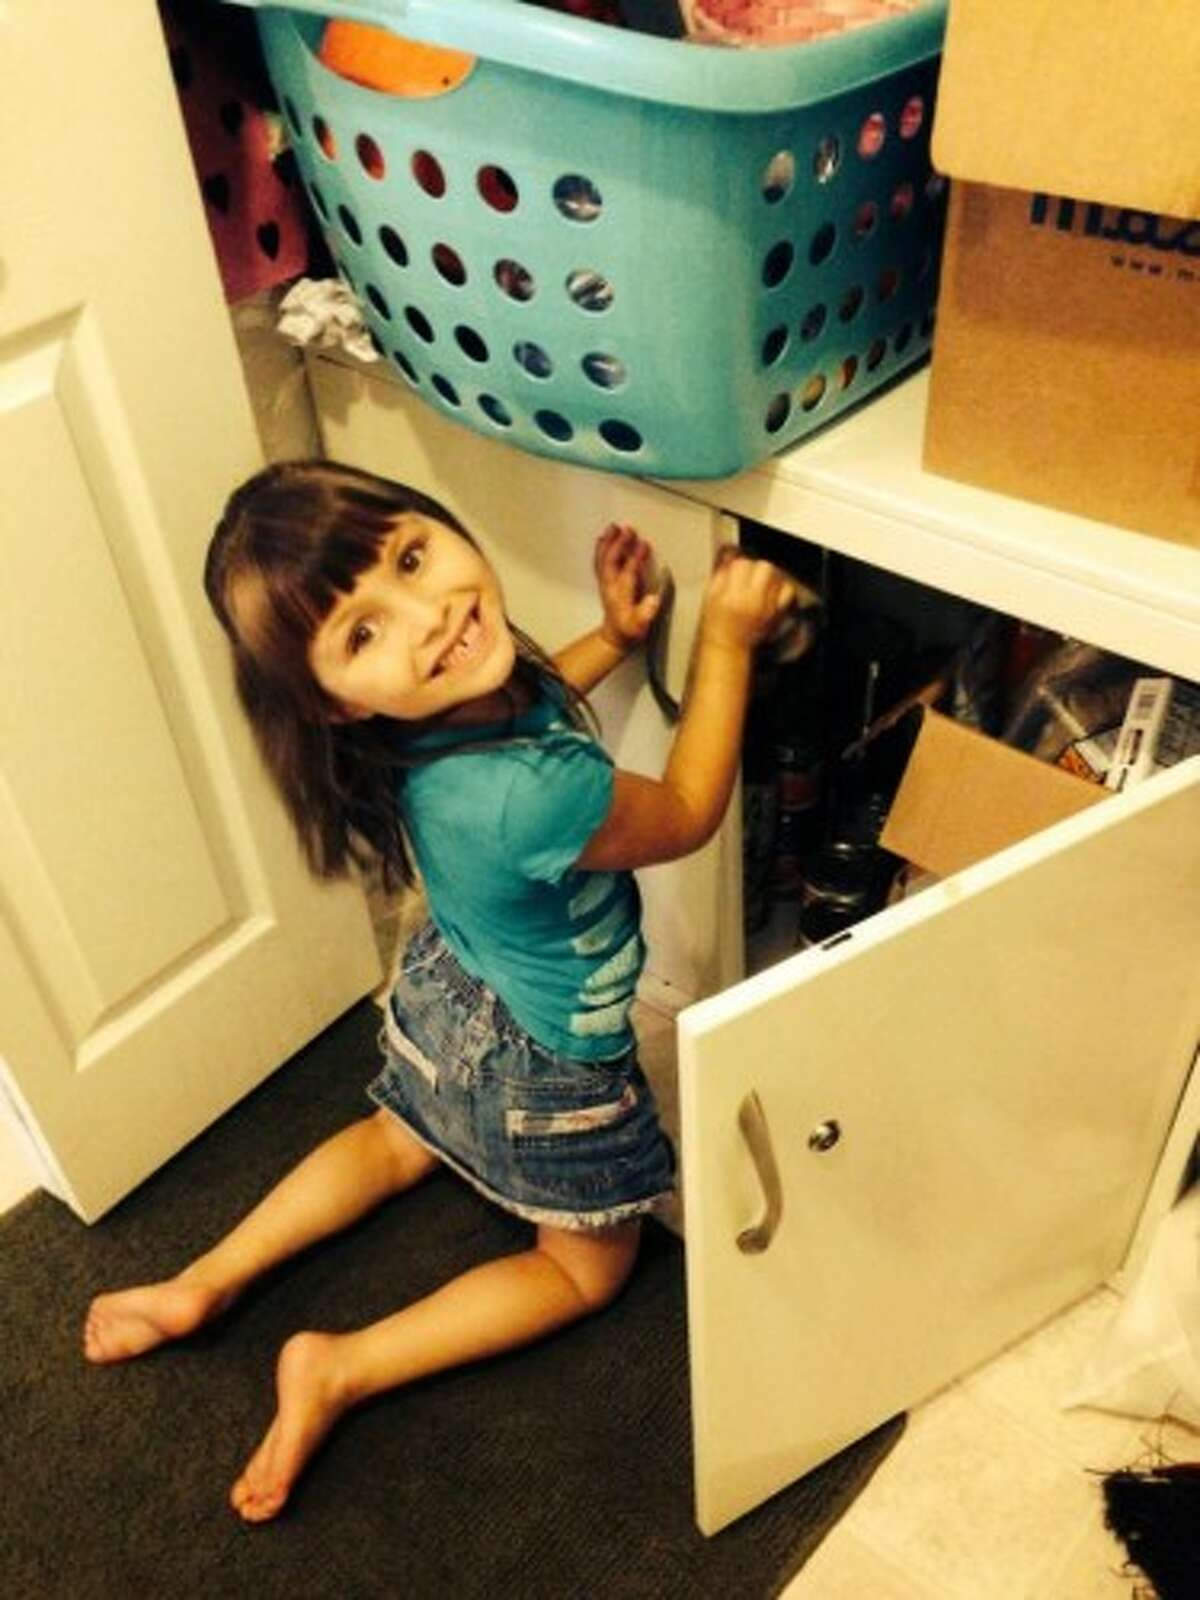 Mallory Kenny's daughter, Alexis Poynor, loves to help her mother out by organizing donations. (Courtesy photo)